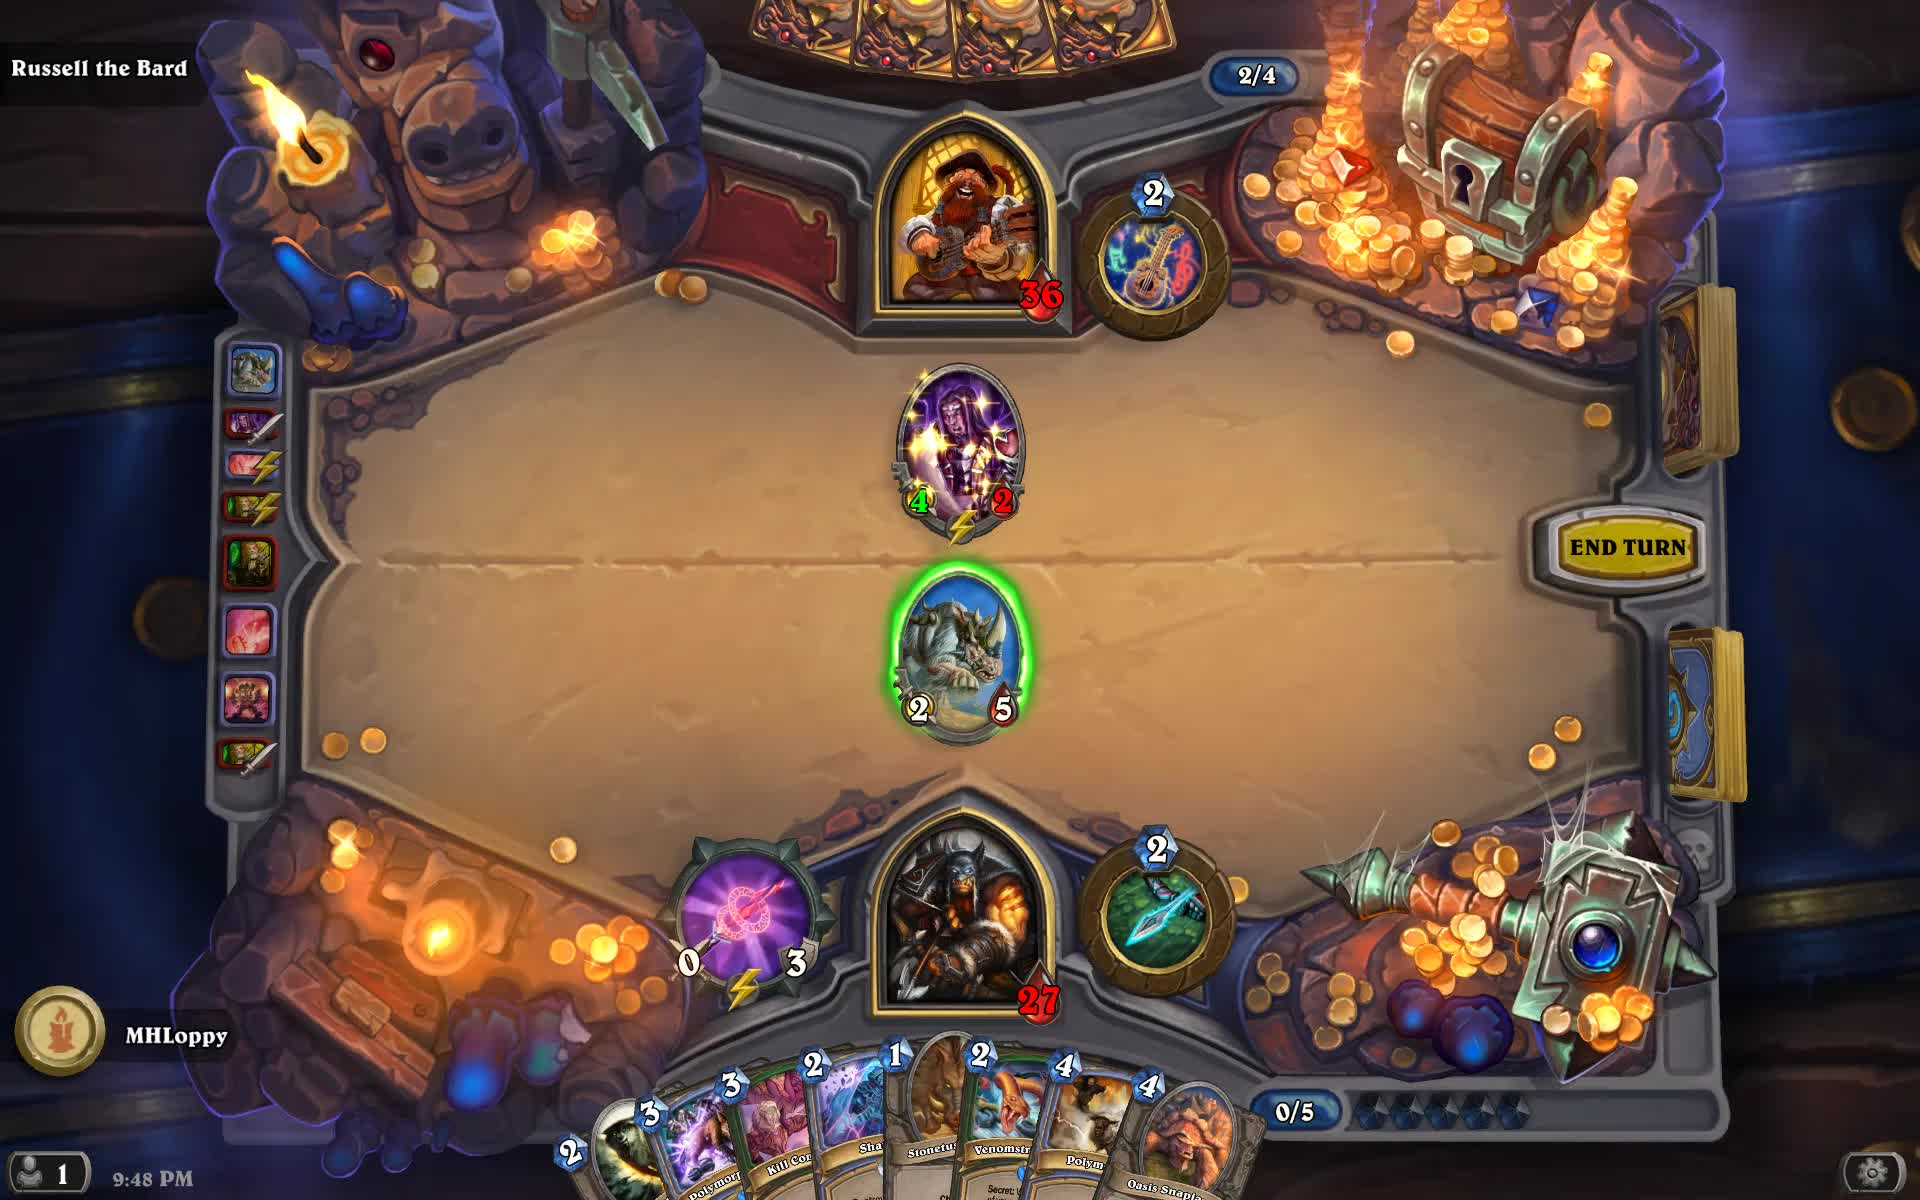 bard, bug, hearthstone, russell, untargetable, Hearthstone-01 GIFs